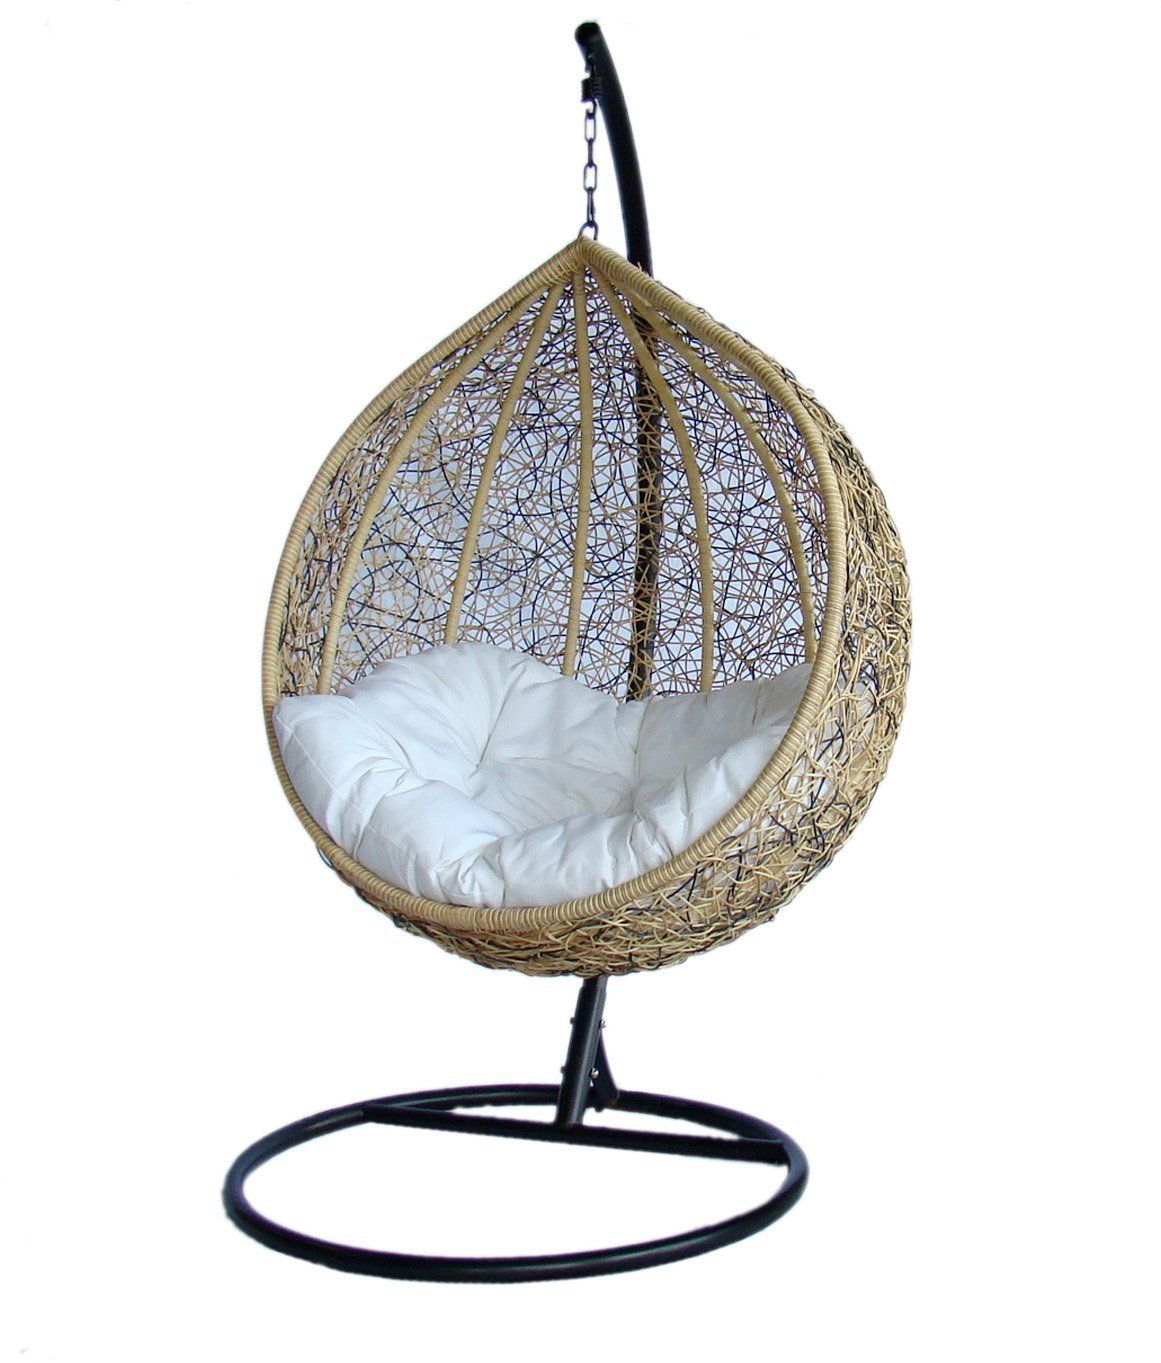 Swinging Chair 17 Types Of Swing Chairs As Gifts For Family You Should Check